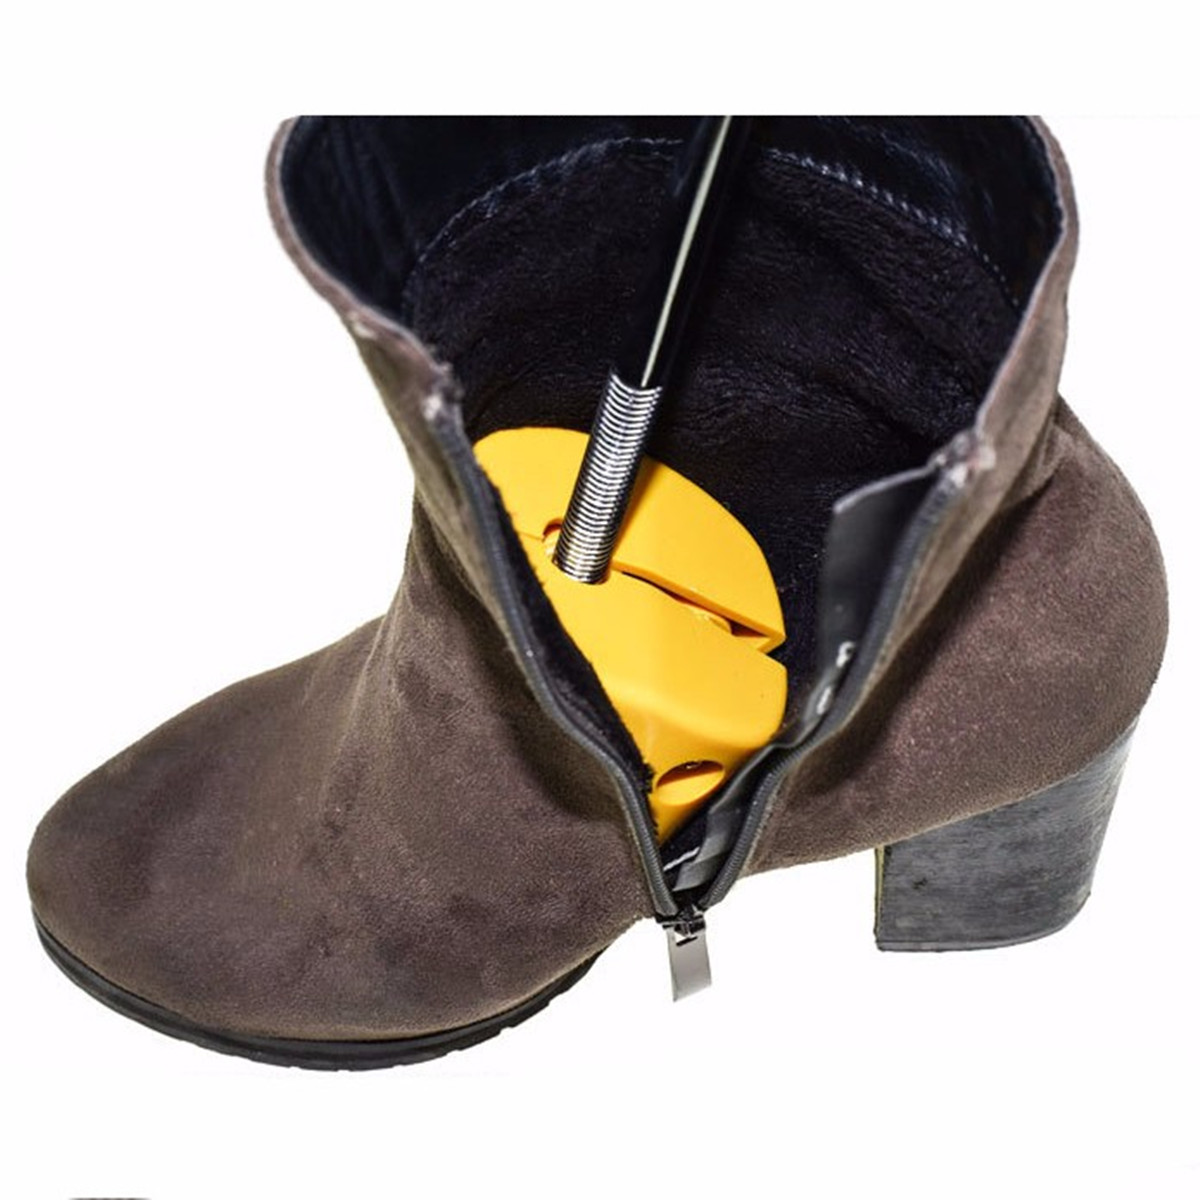 Professional Boot Stretcher Adjustable Width Shoe Shaper Extender Wooden Boot Tree Stretch for Women